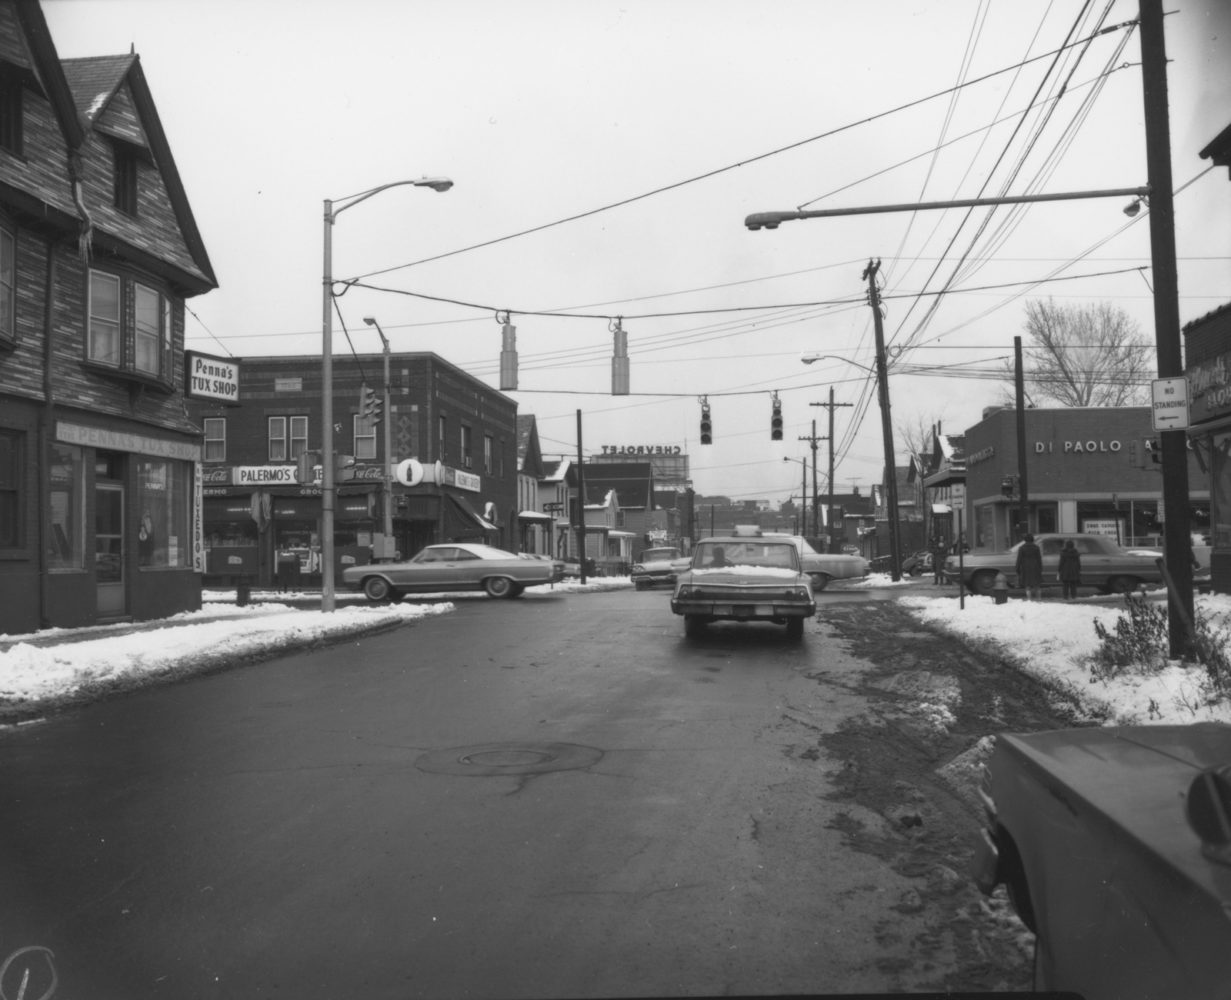 Lyell Avenue with DiPaolo Bakery - photo from City of Rochester